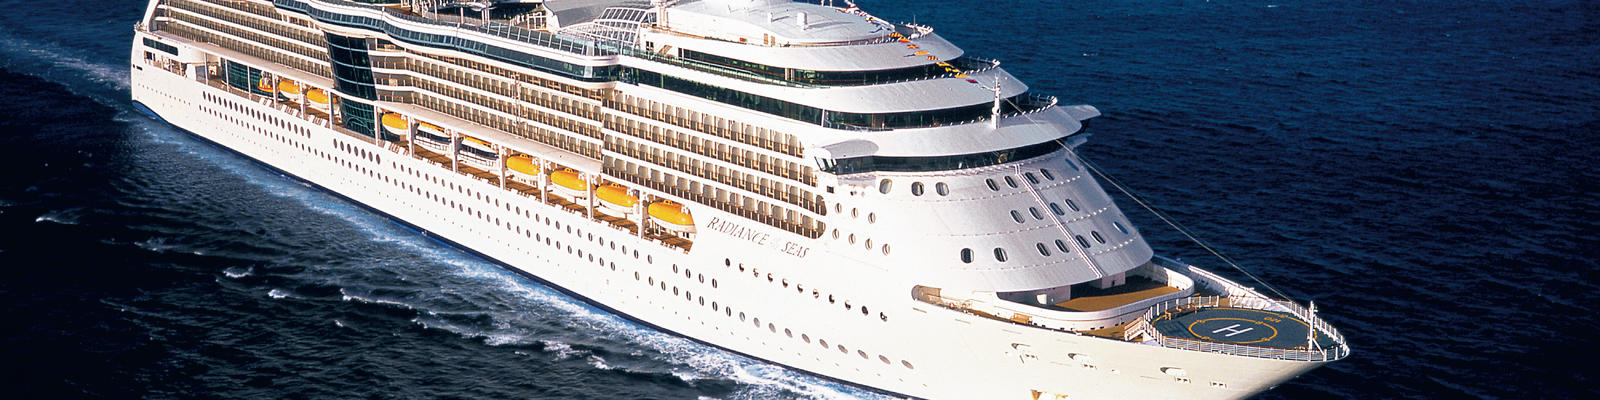 Radiance of the Seas (Photo: Royal Caribbean)